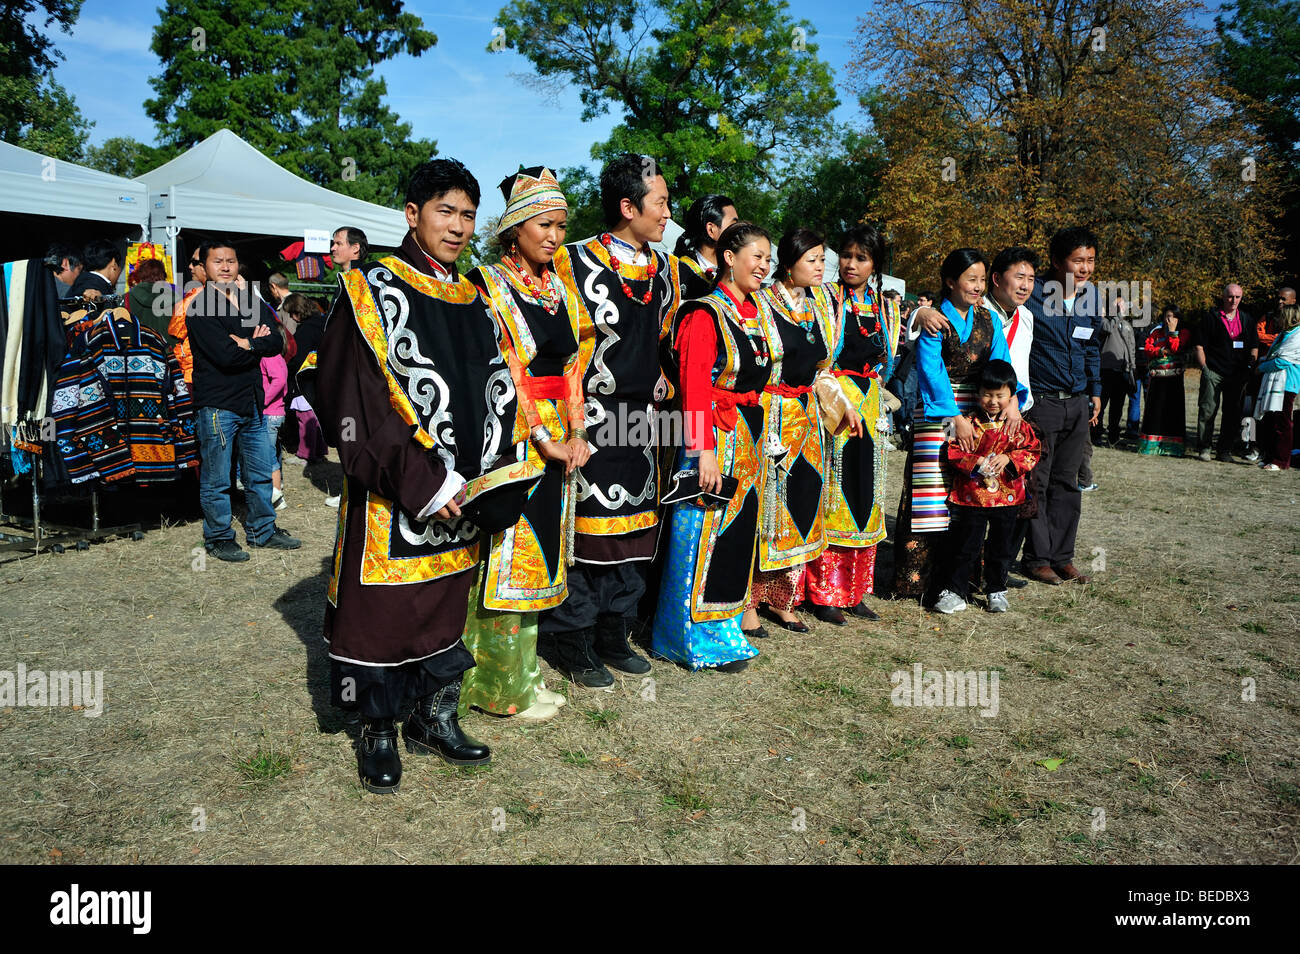 Paris, France - Group Portrait, Tibetans Dressed in Traditional Costumes at Tibetian Festival, - Stock Image